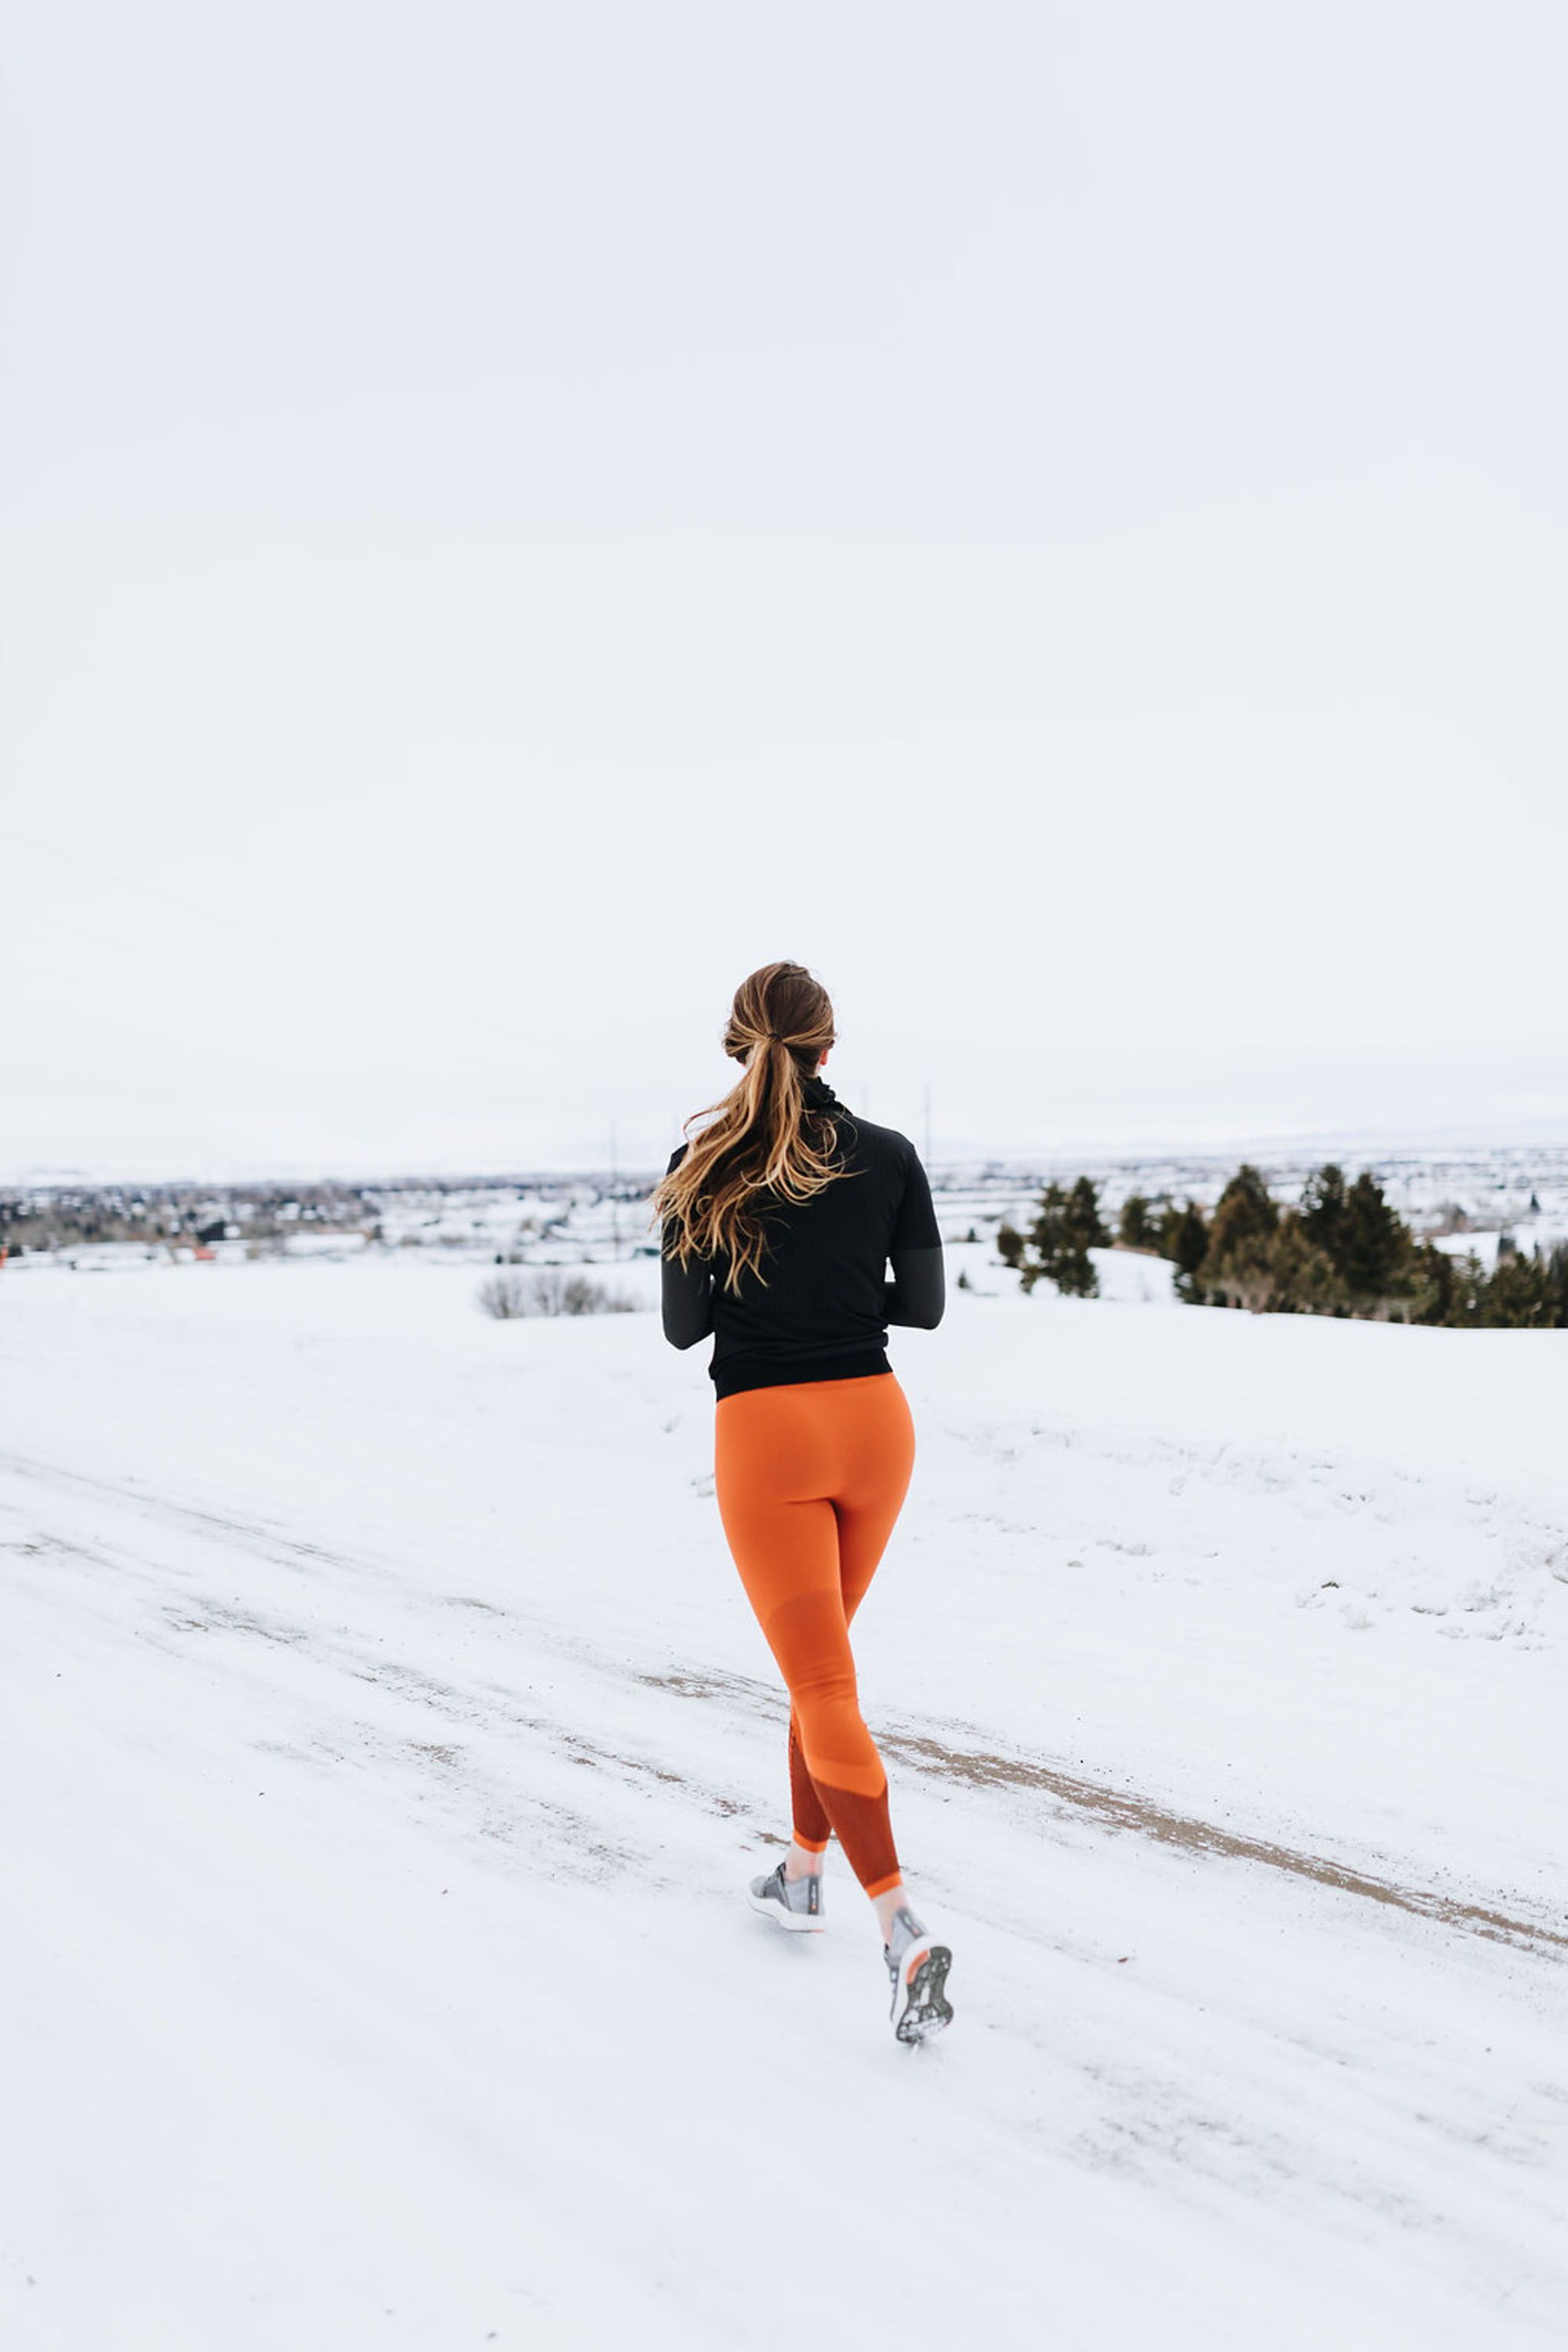 cold weather runs in adidas orange warp knit tights for a